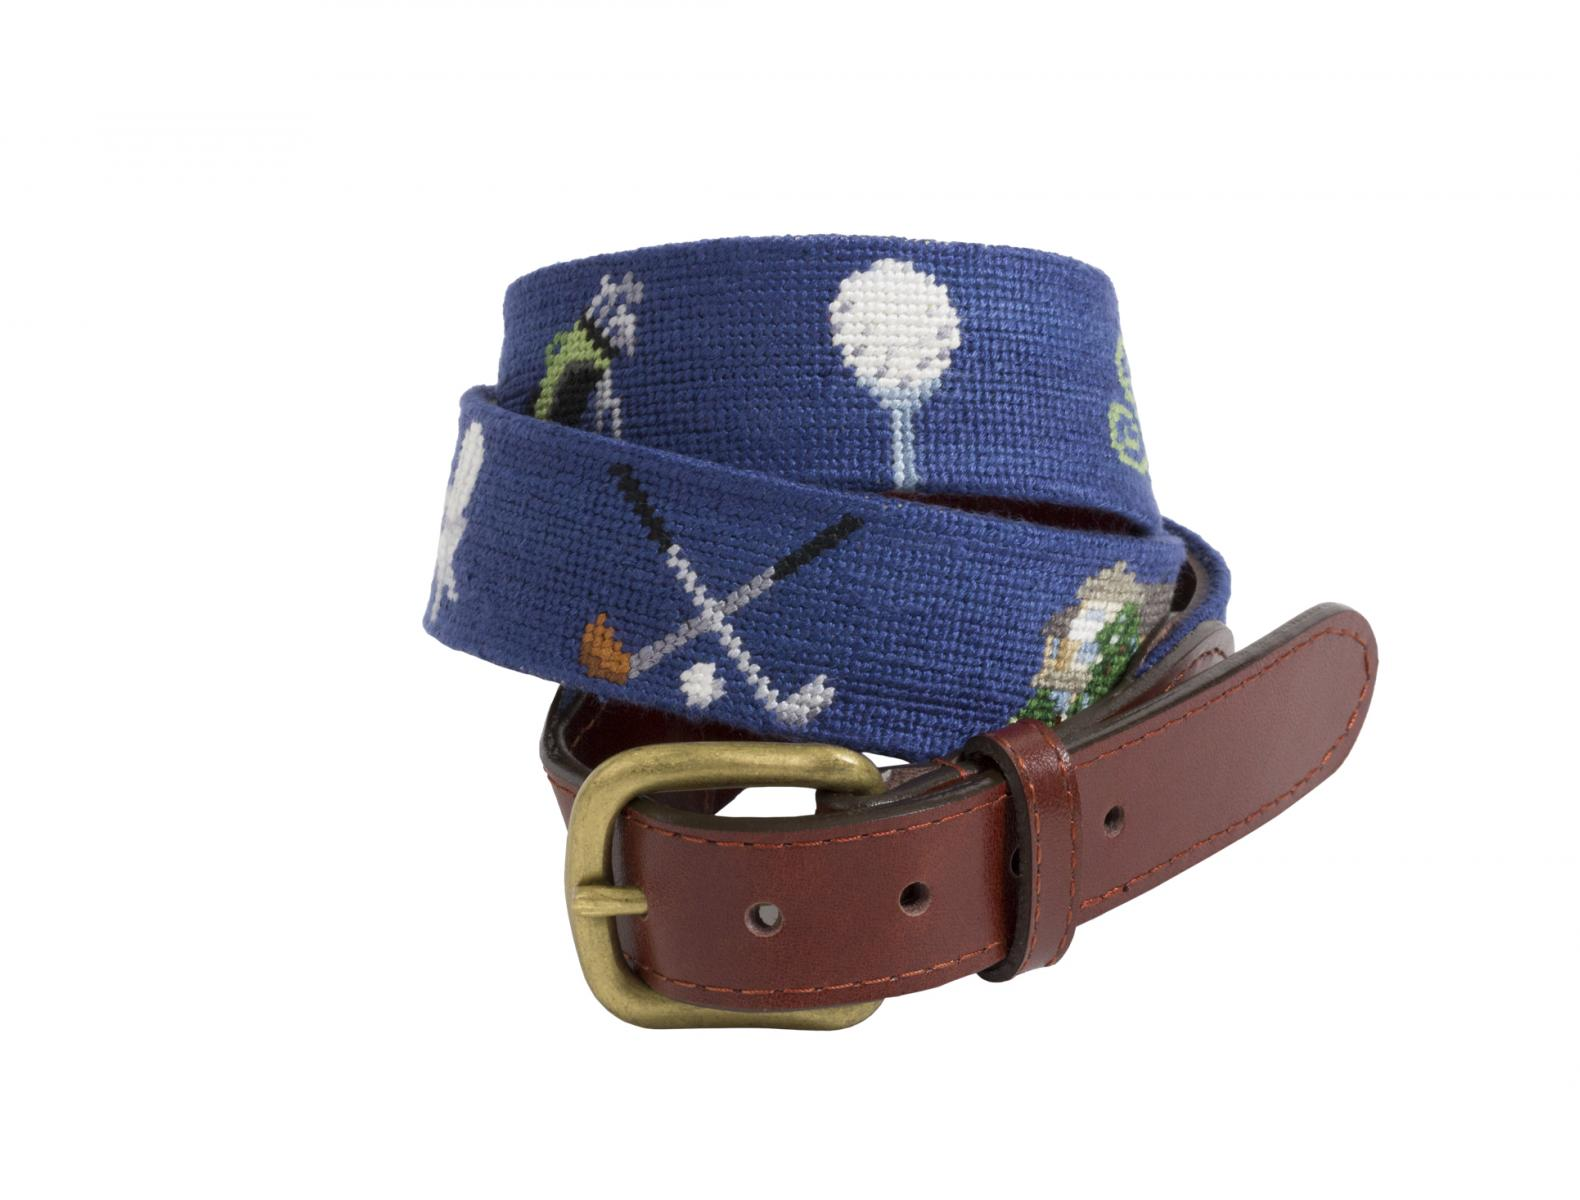 Sea Island Custom Golf Life Belt.